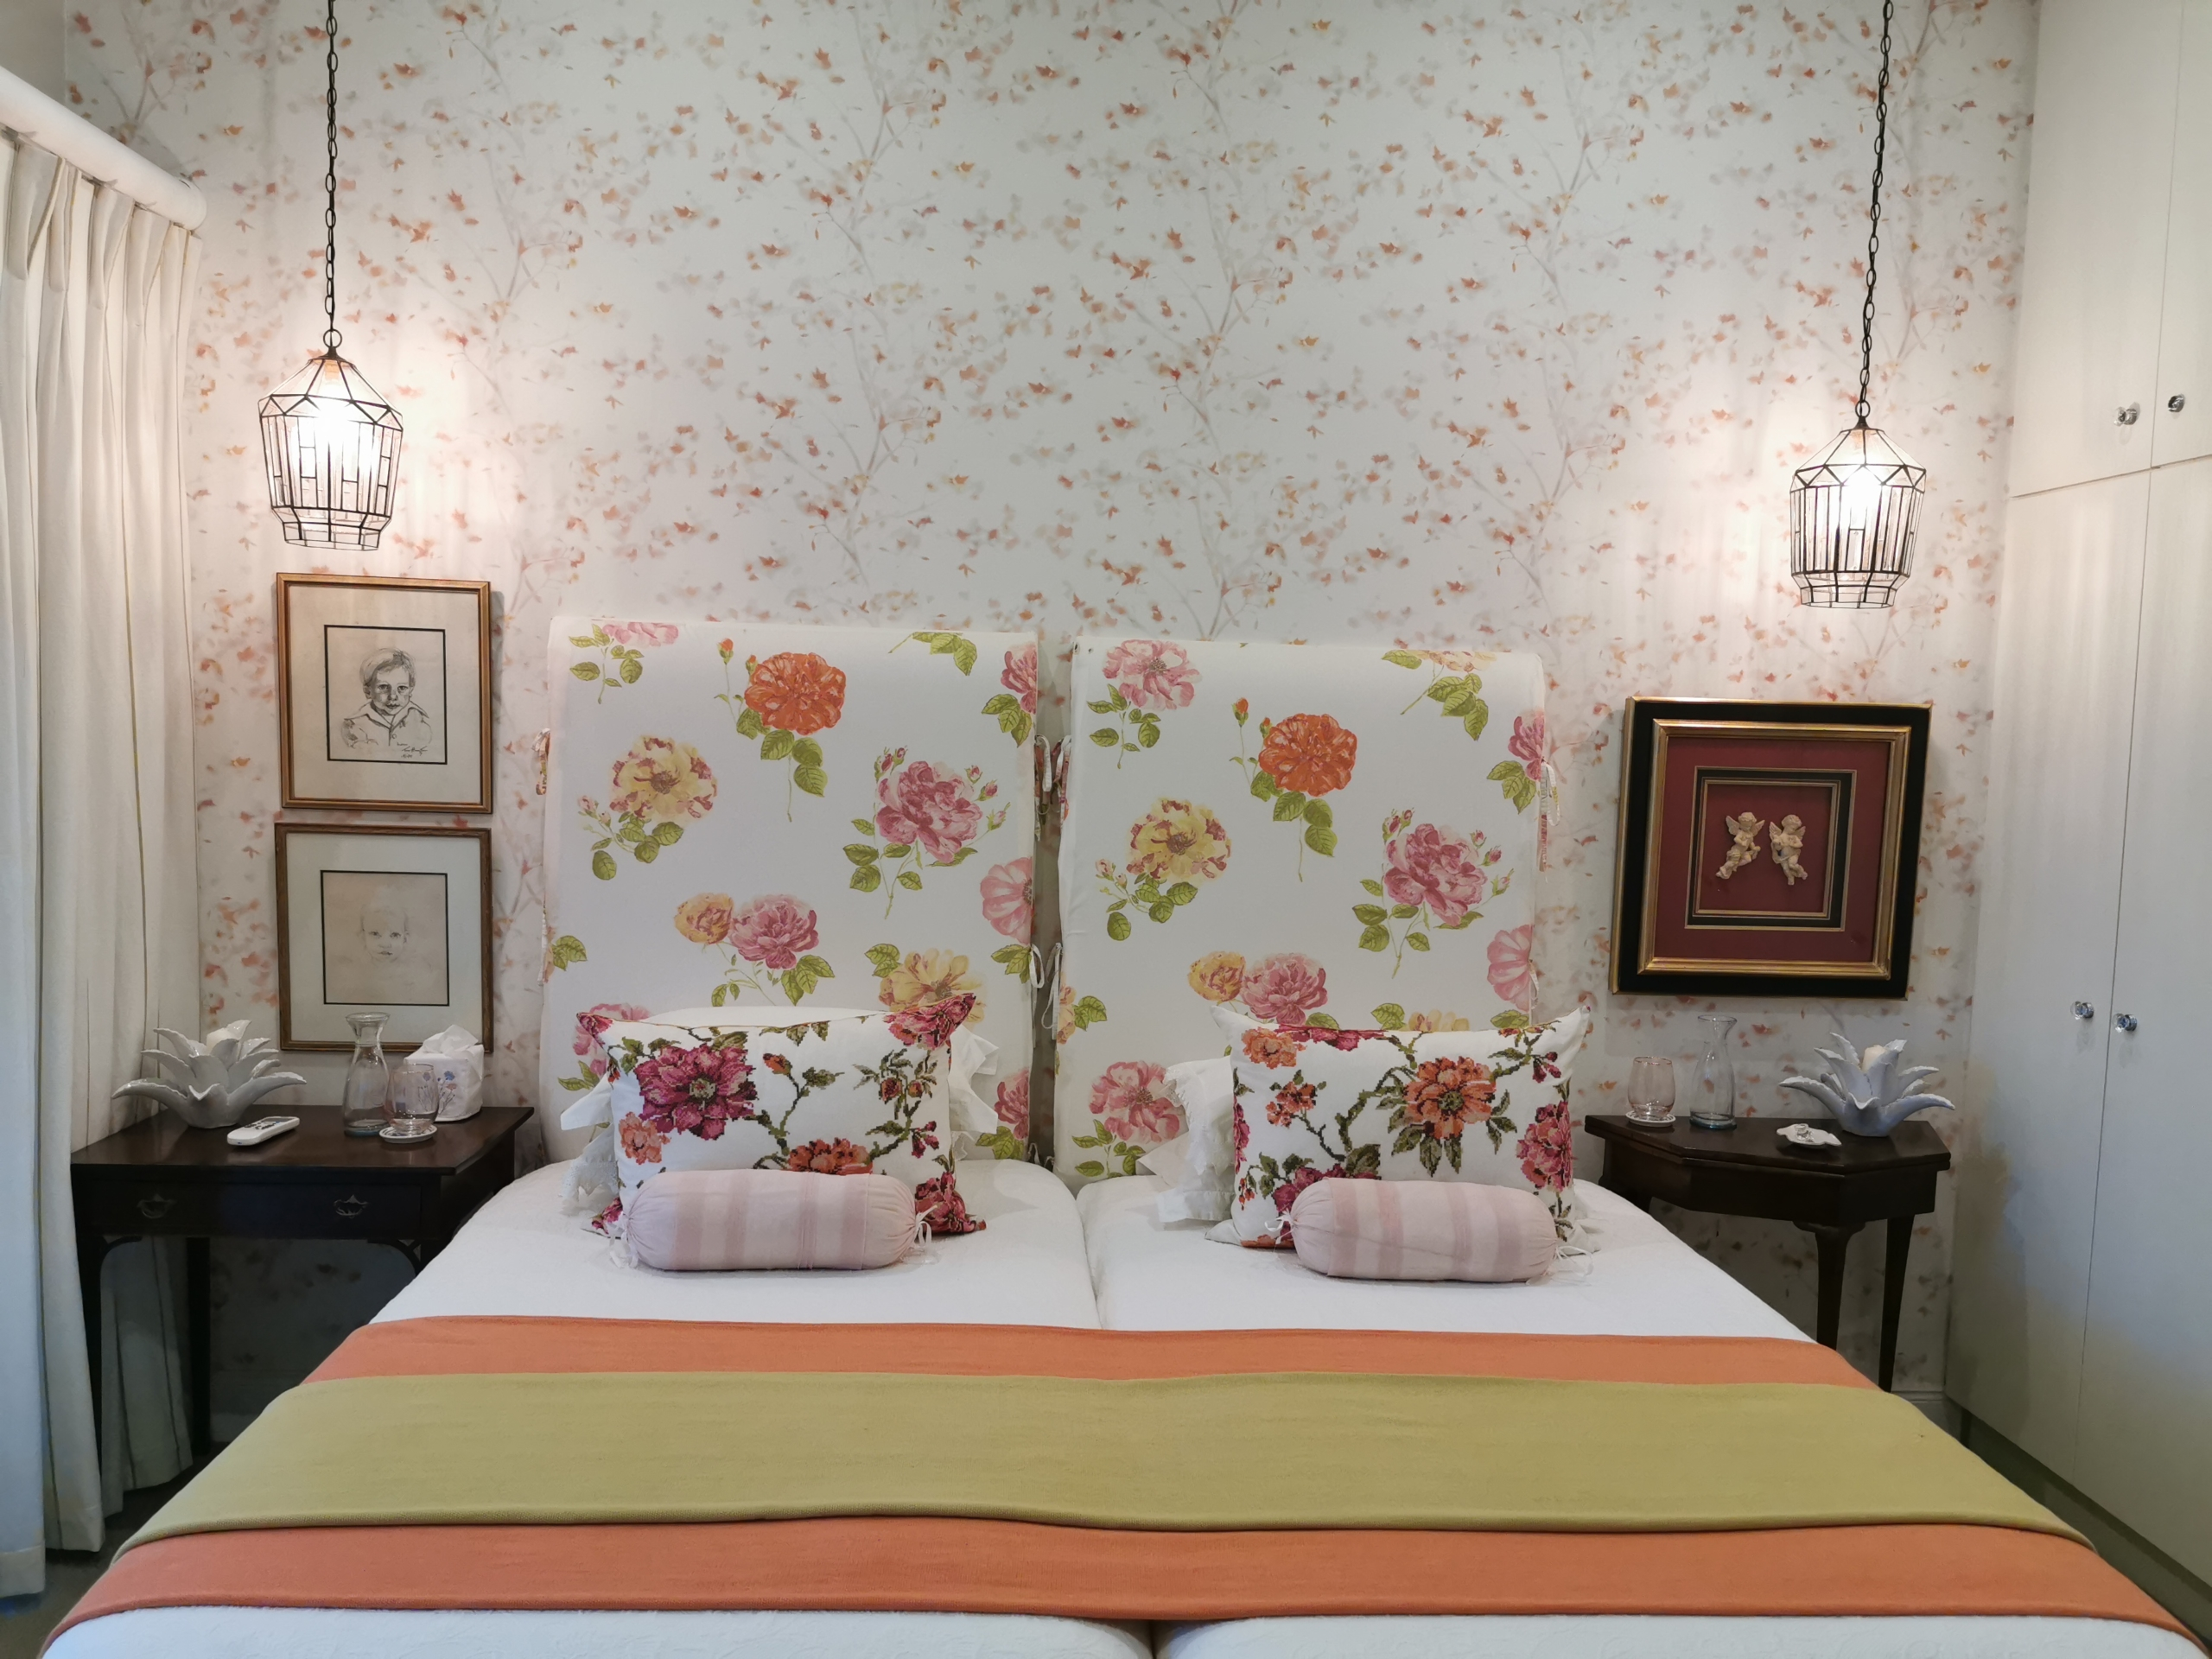 Refreshed Designs- Guest bedroom 3